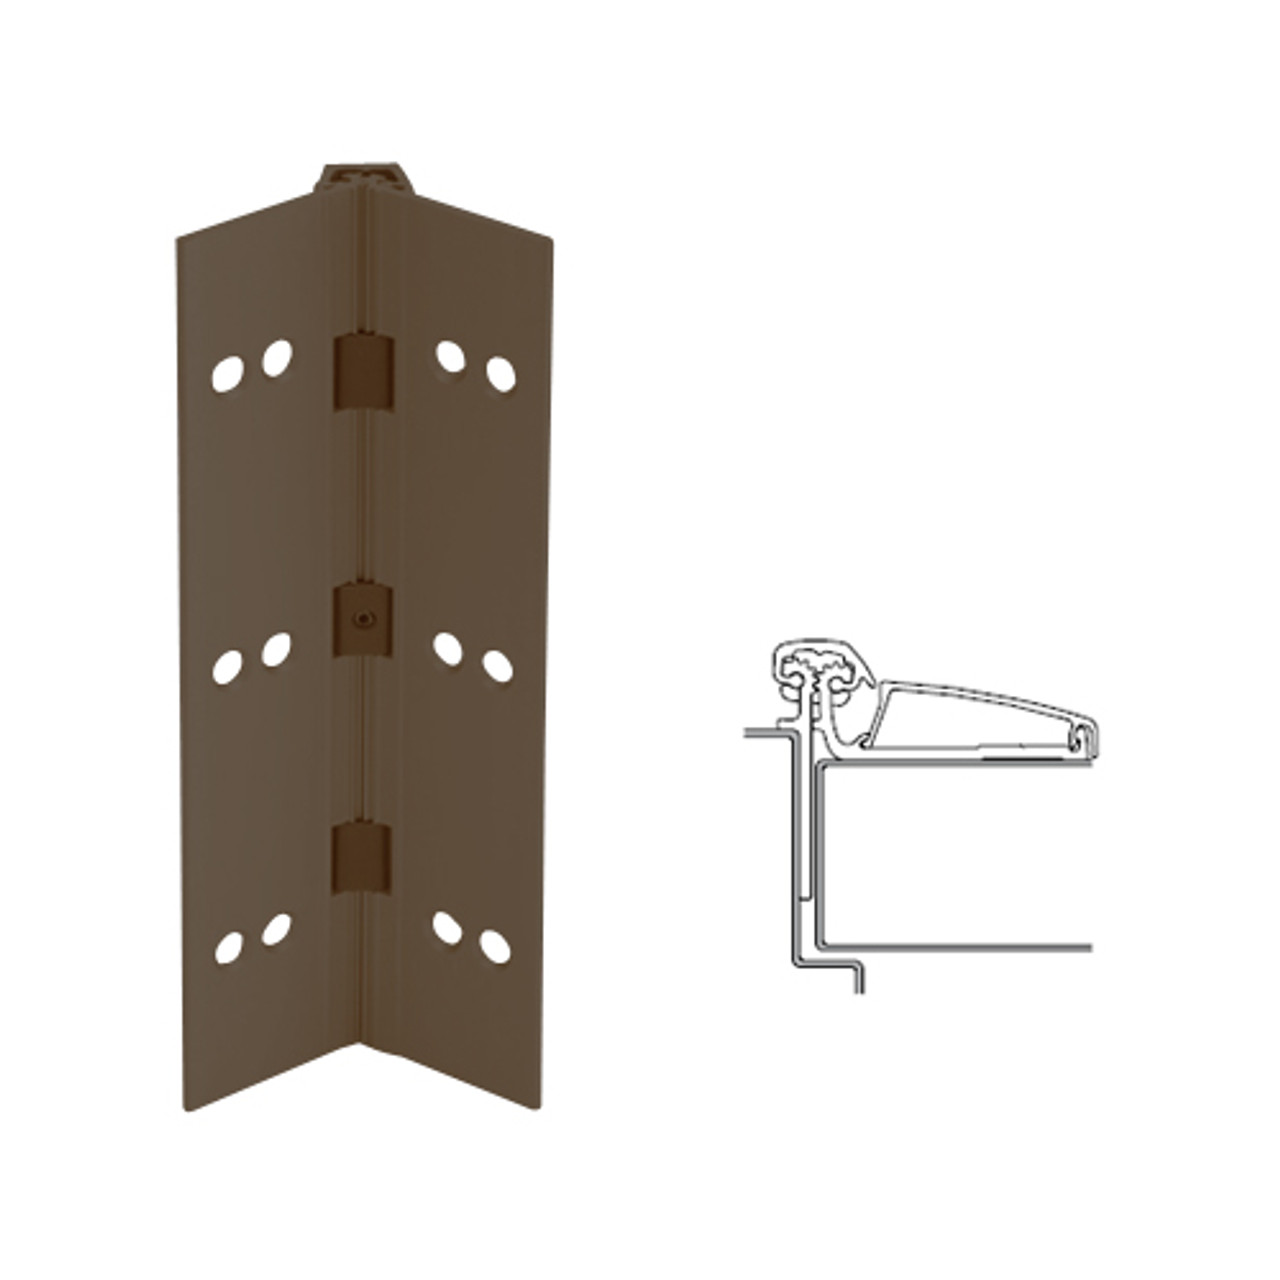 045XY-313AN-85-SECWDHM IVES Adjustable Half Surface Continuous Geared Hinges with Security Screws - Hex Pin Drive in Dark Bronze Anodized